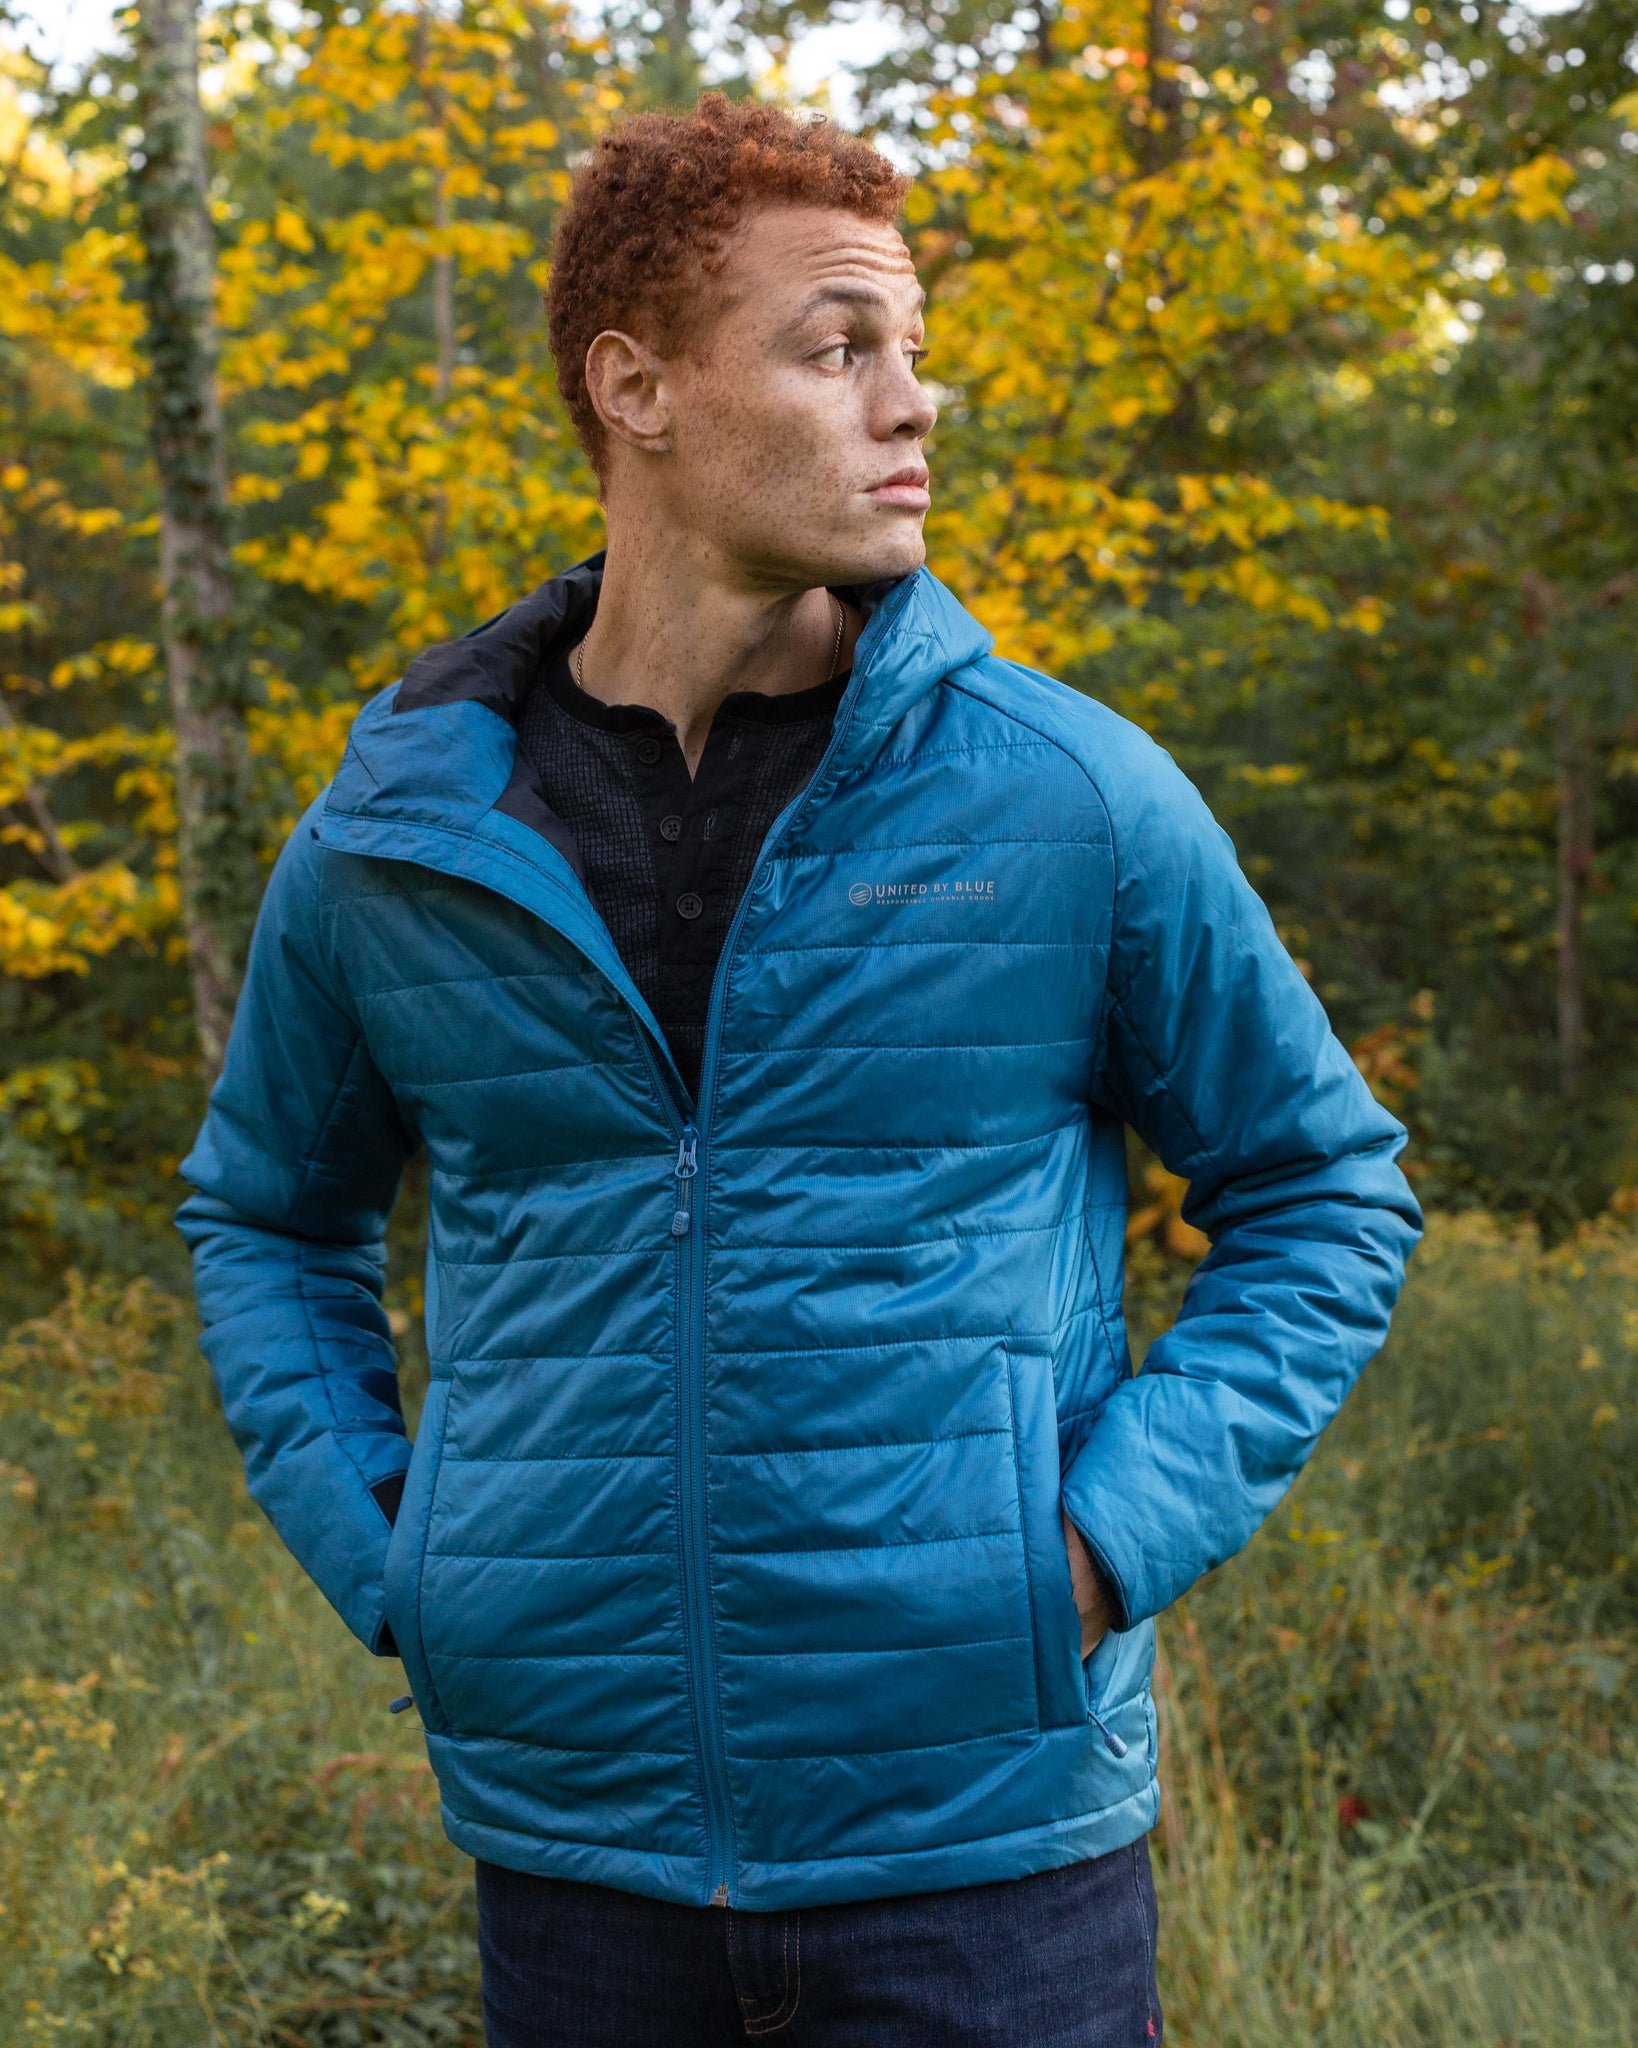 The Men's Bison Ultralight